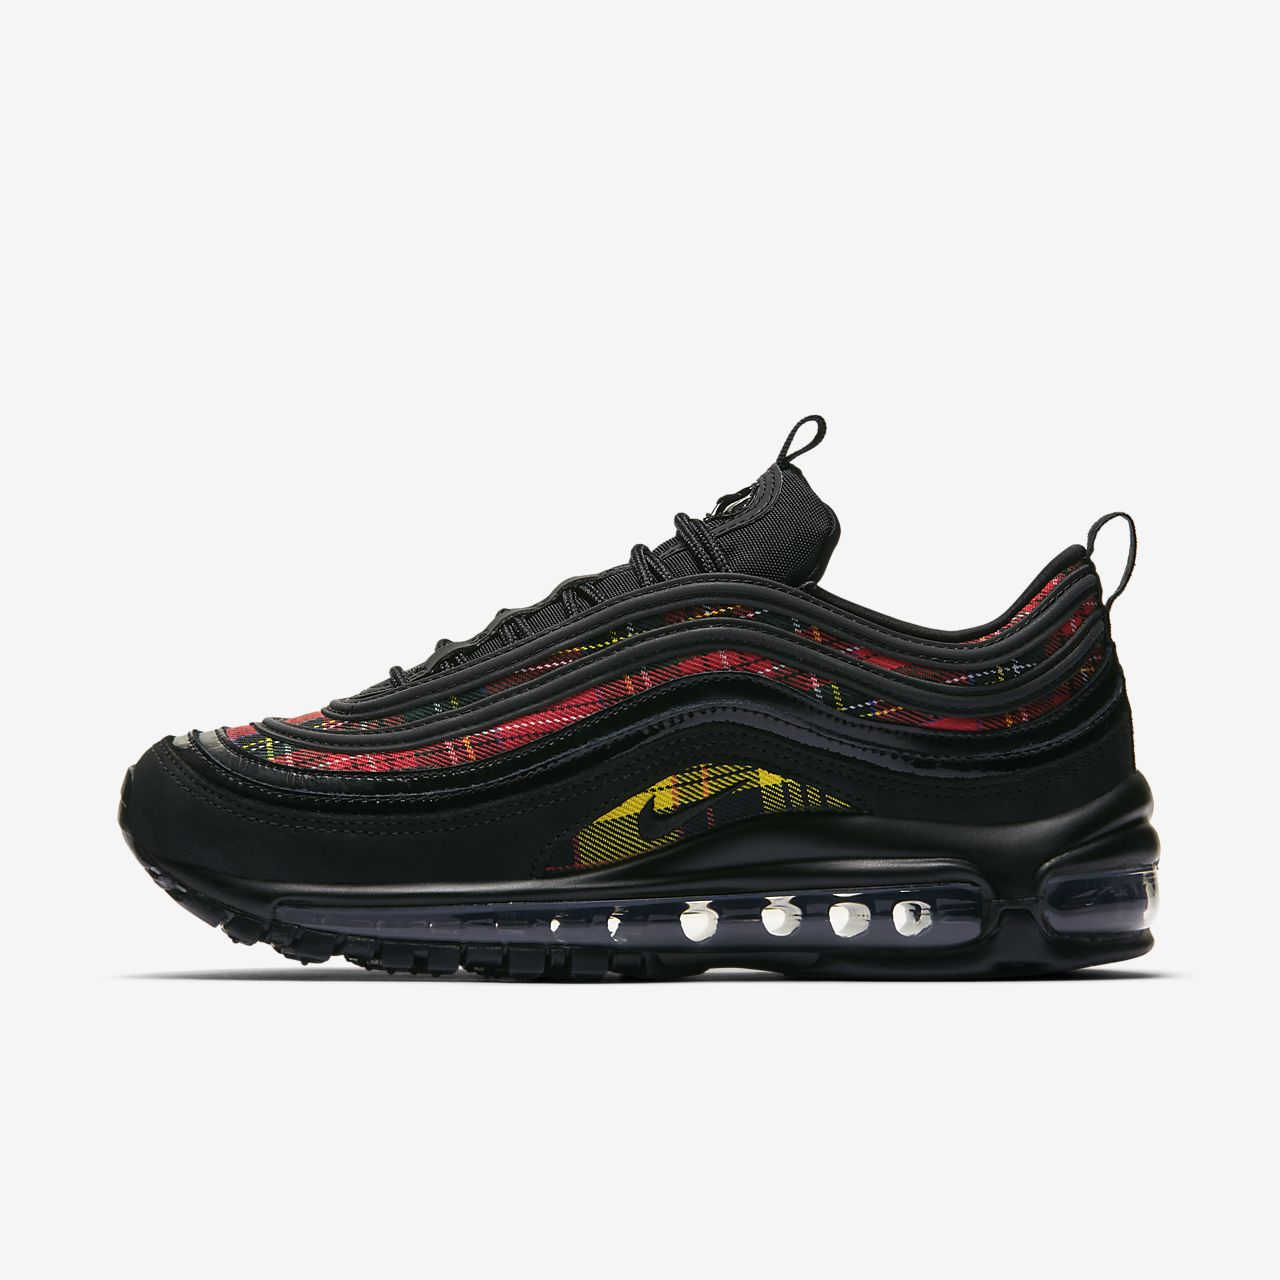 ... amazon nike air max 97 se sko til dame 79a04 1914d 6f1bd6124